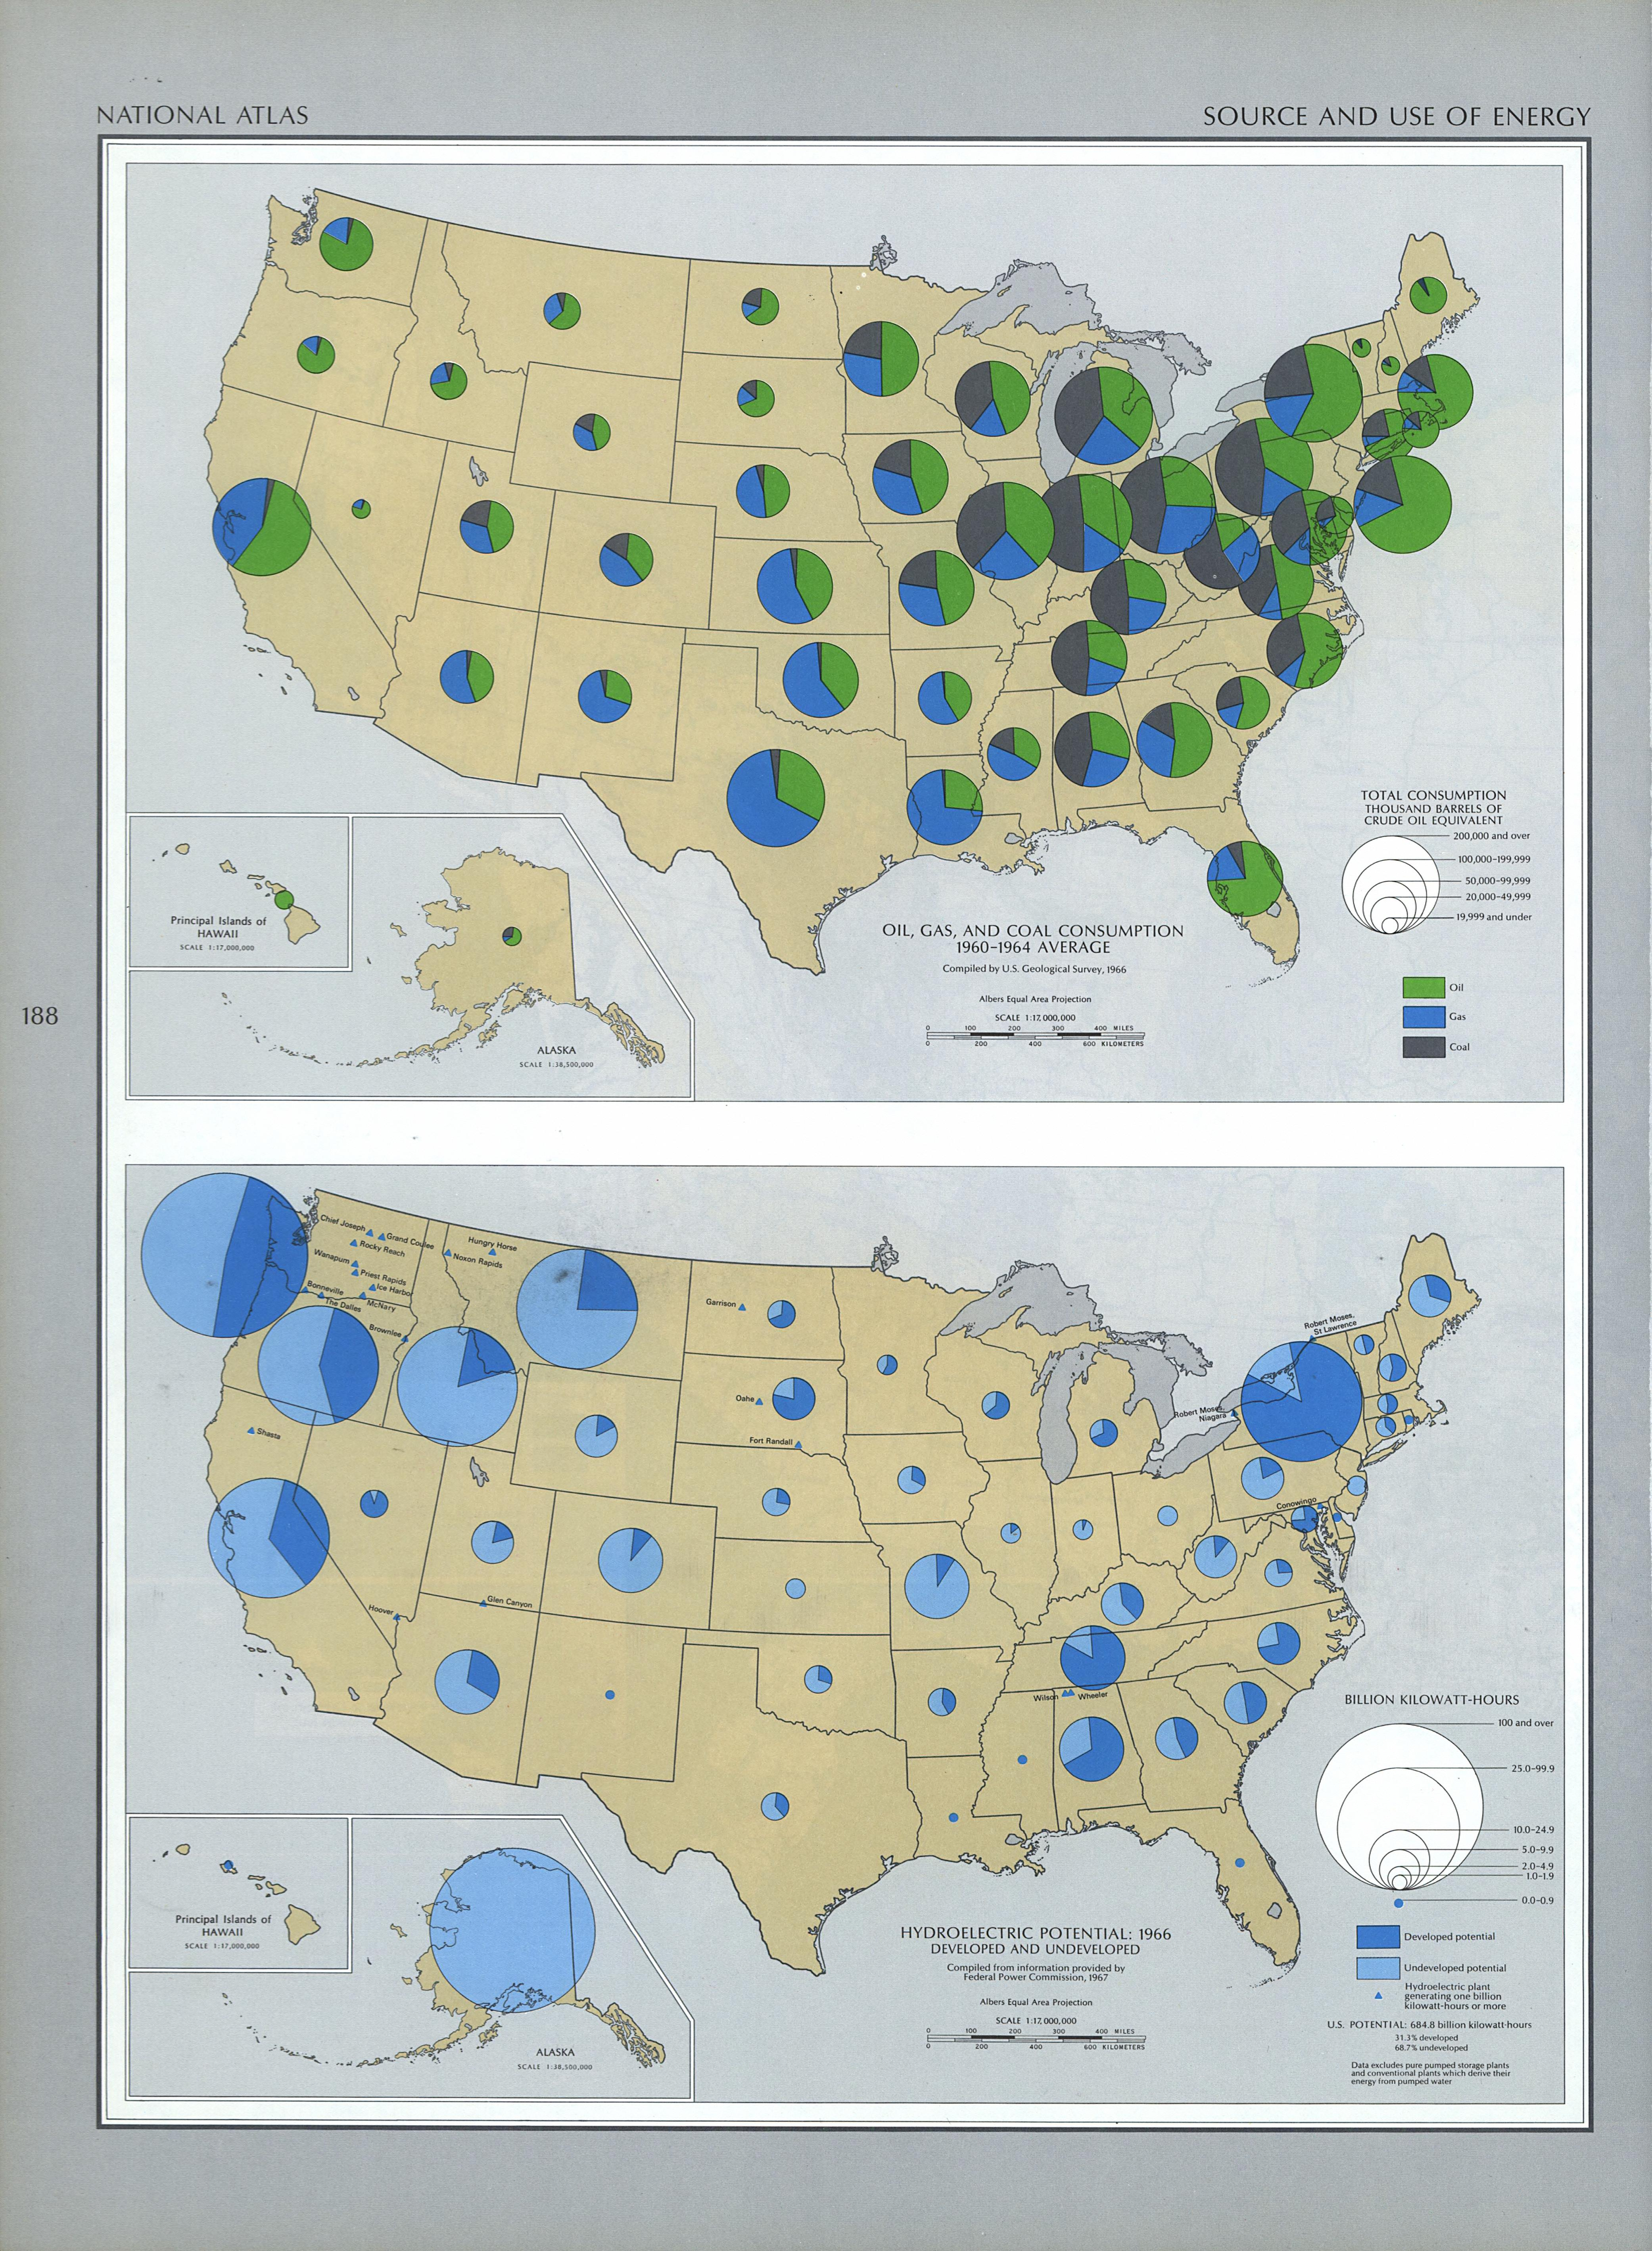 United States Source and Use of Energy Map